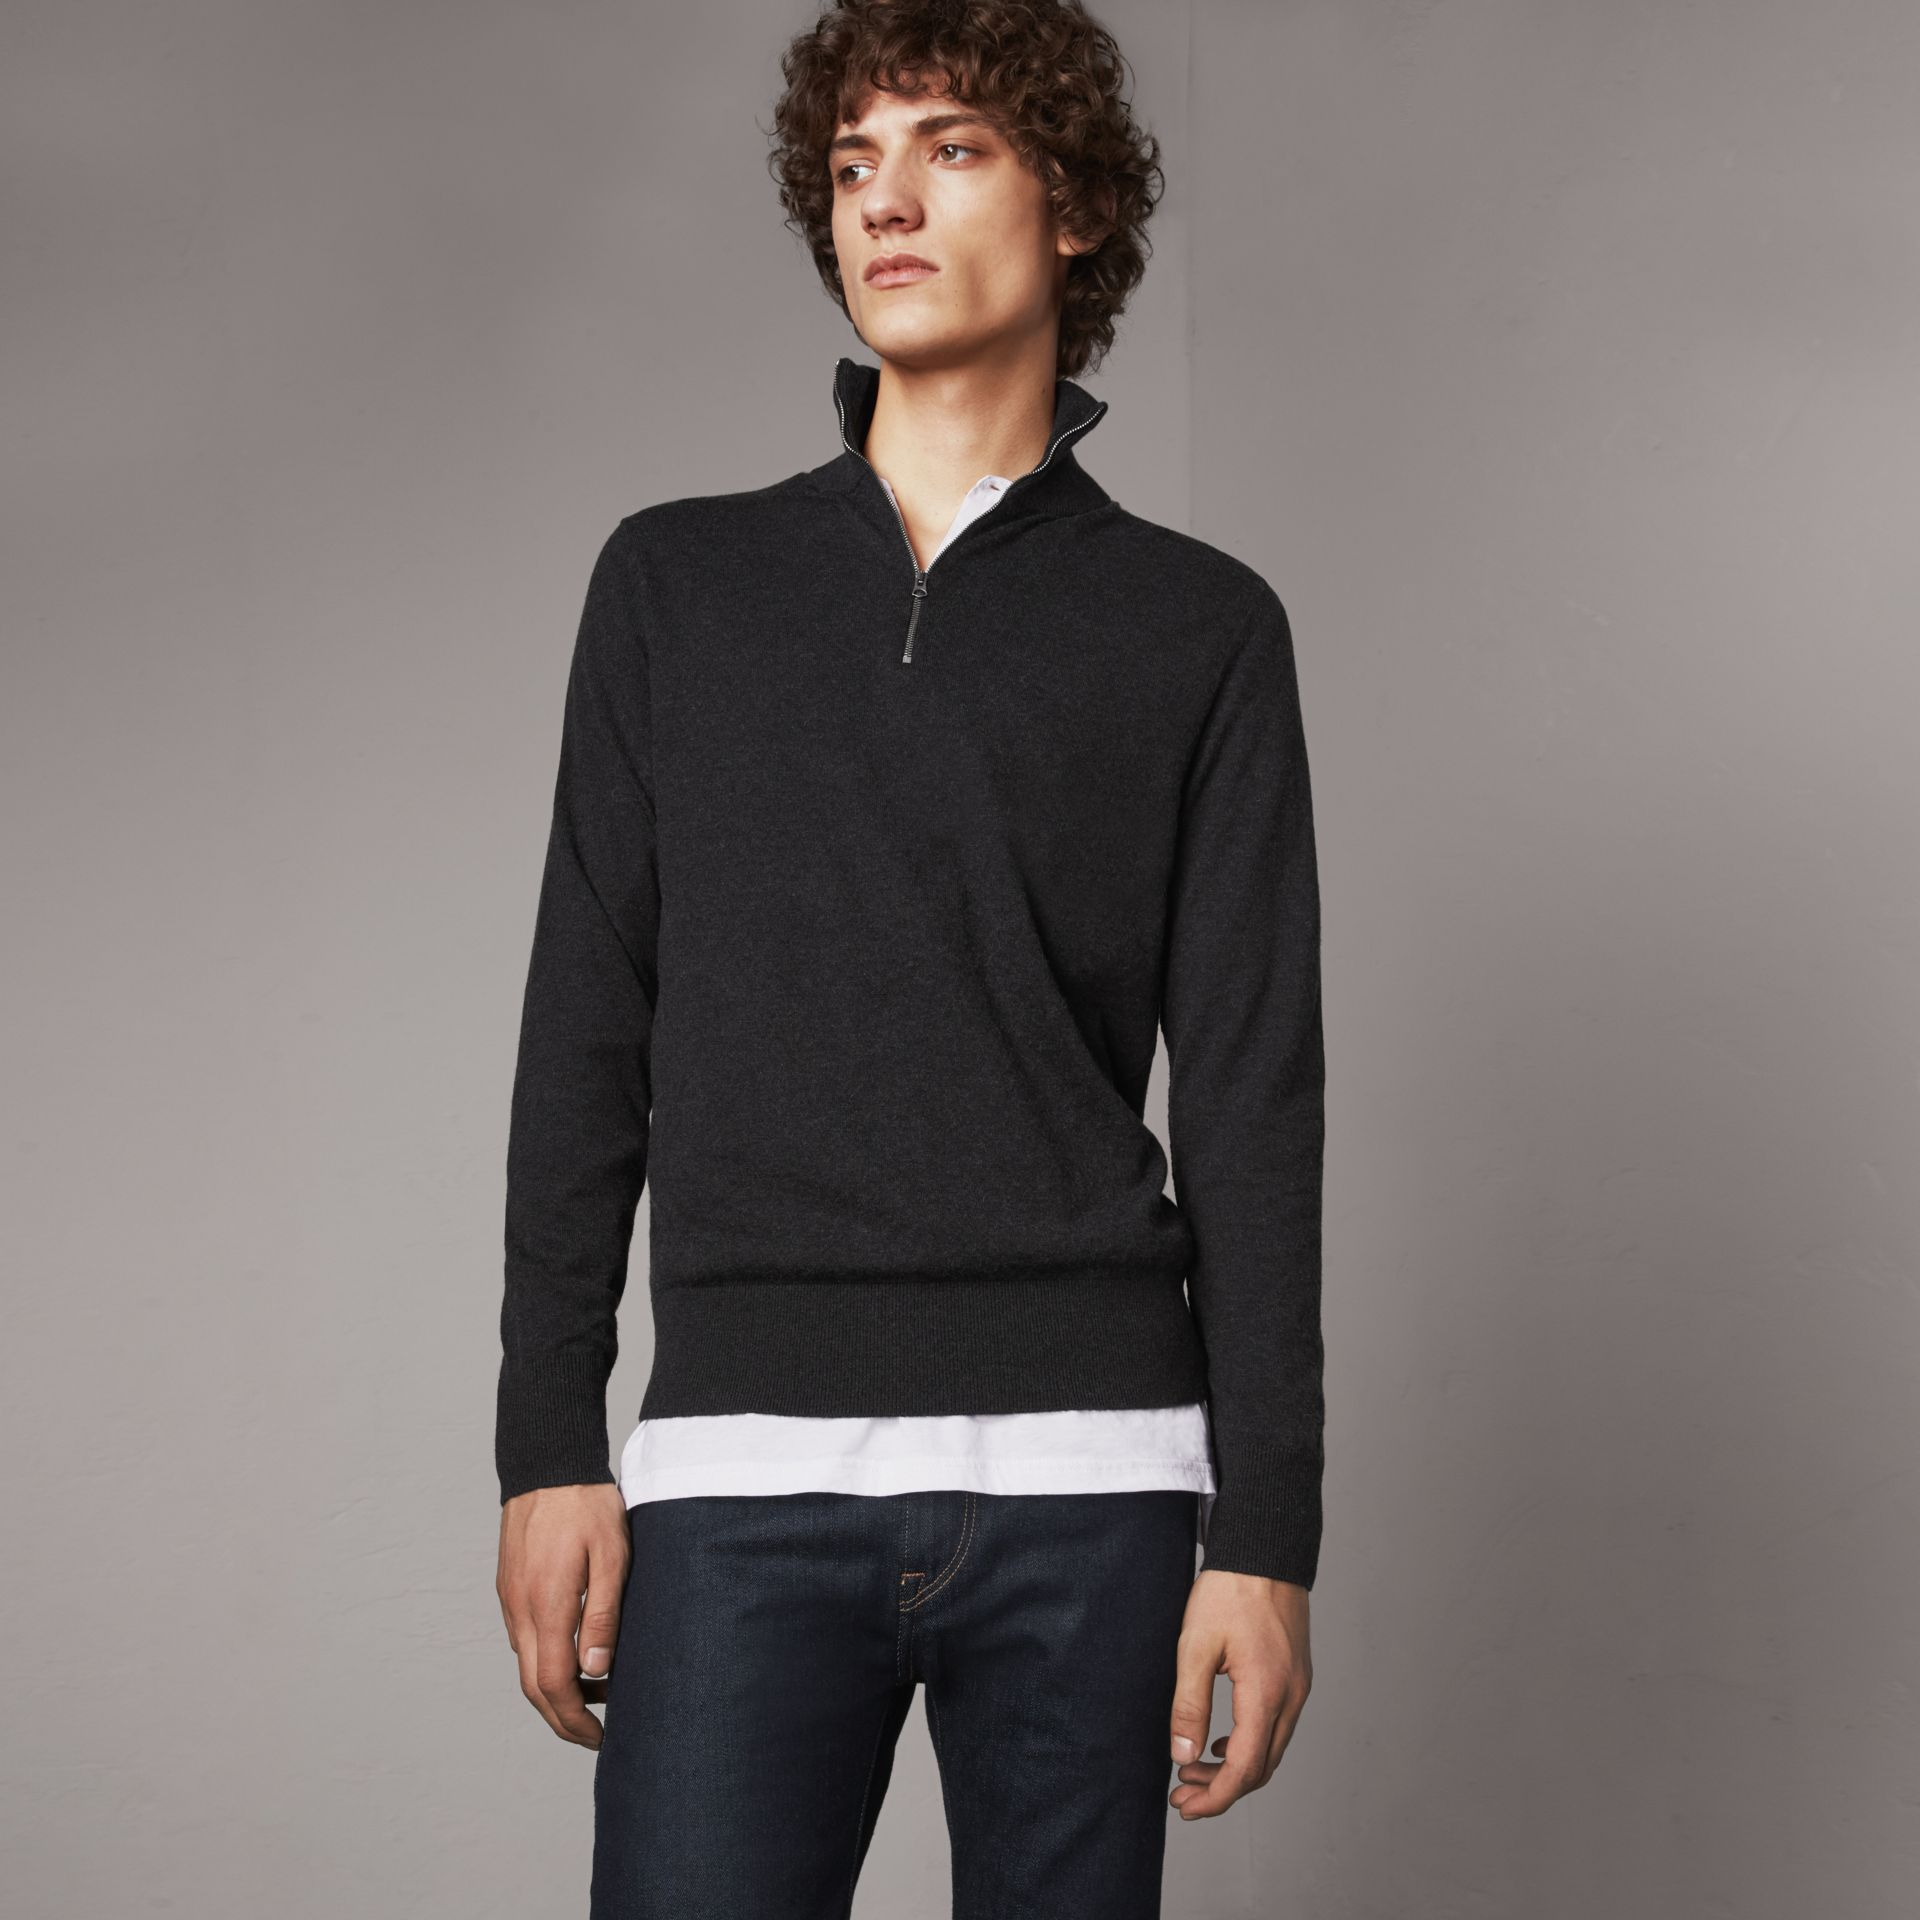 Zip-neck Cashmere Cotton Sweater in Charcoal - Men | Burberry - gallery image 0